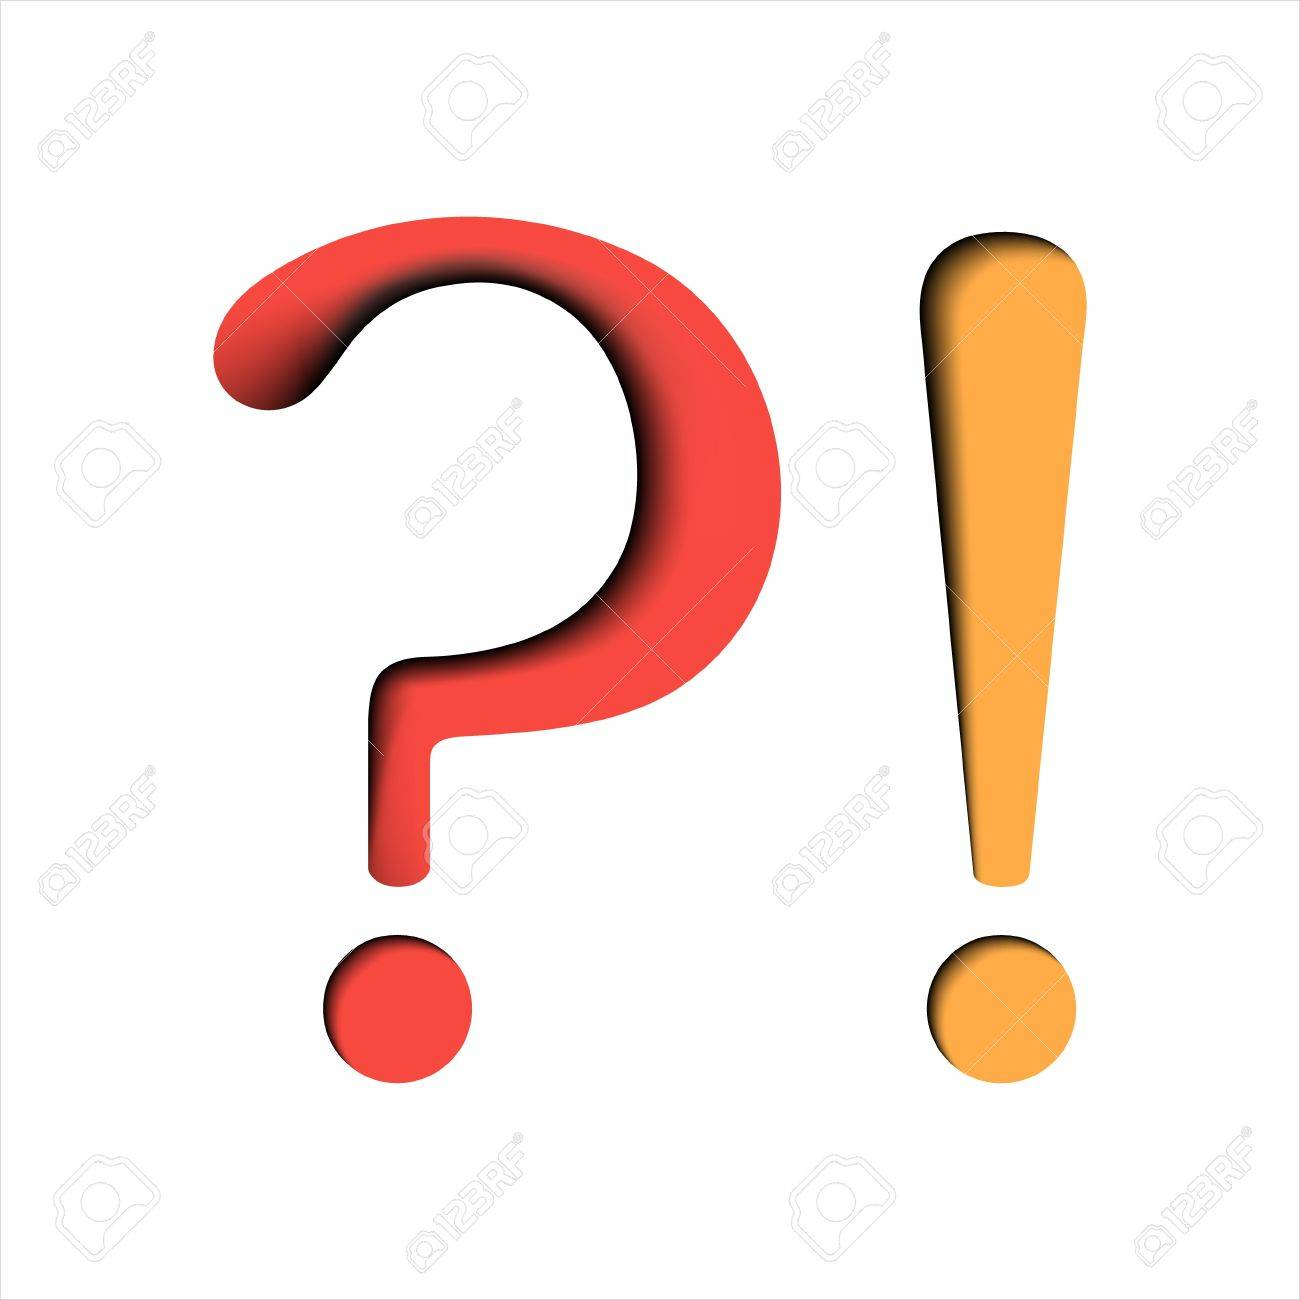 Question and exclamation marks on white background Stock Vector - 12931200